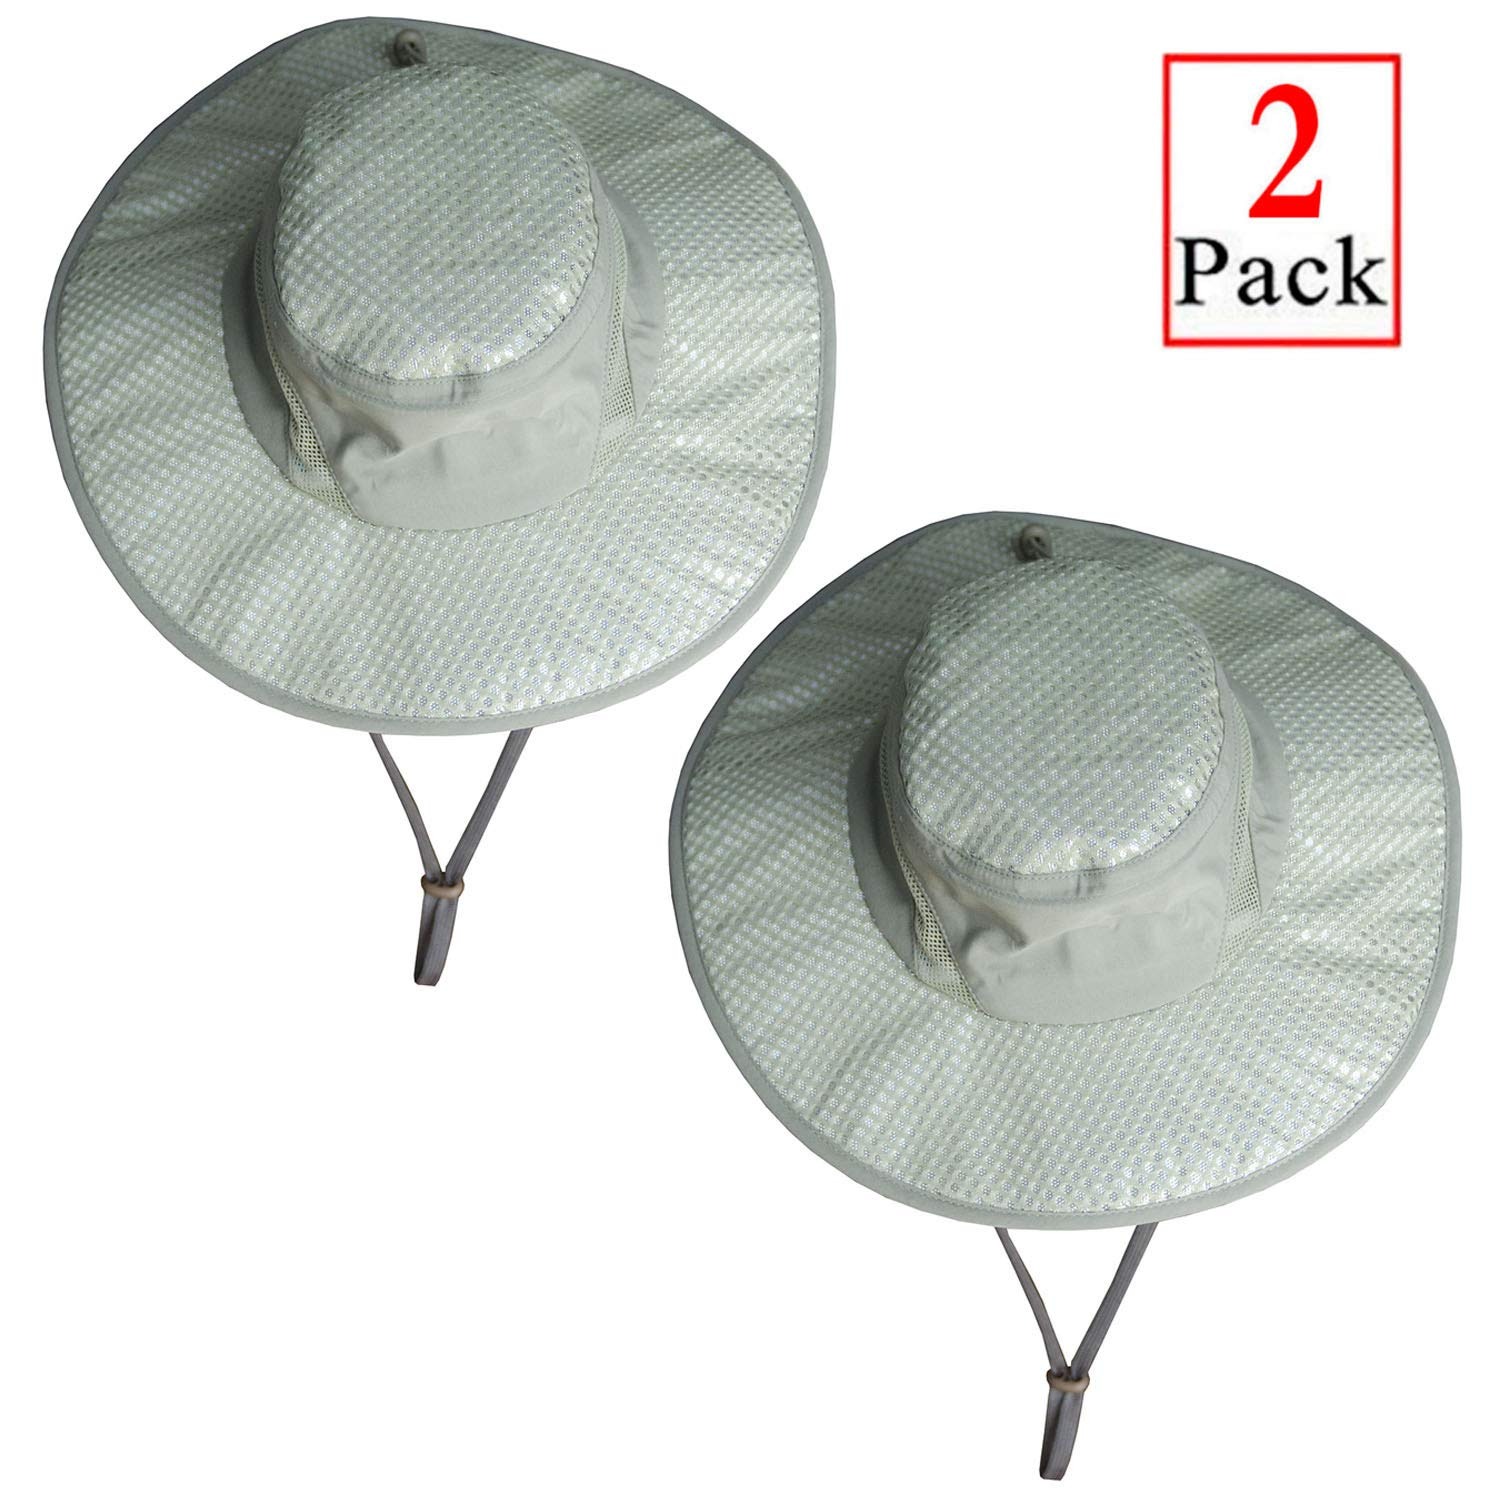 e444969cc Amazon.com : Iceyyyy 2 Pack Arctic Evaporative Cooling Hat Sunscreen ...